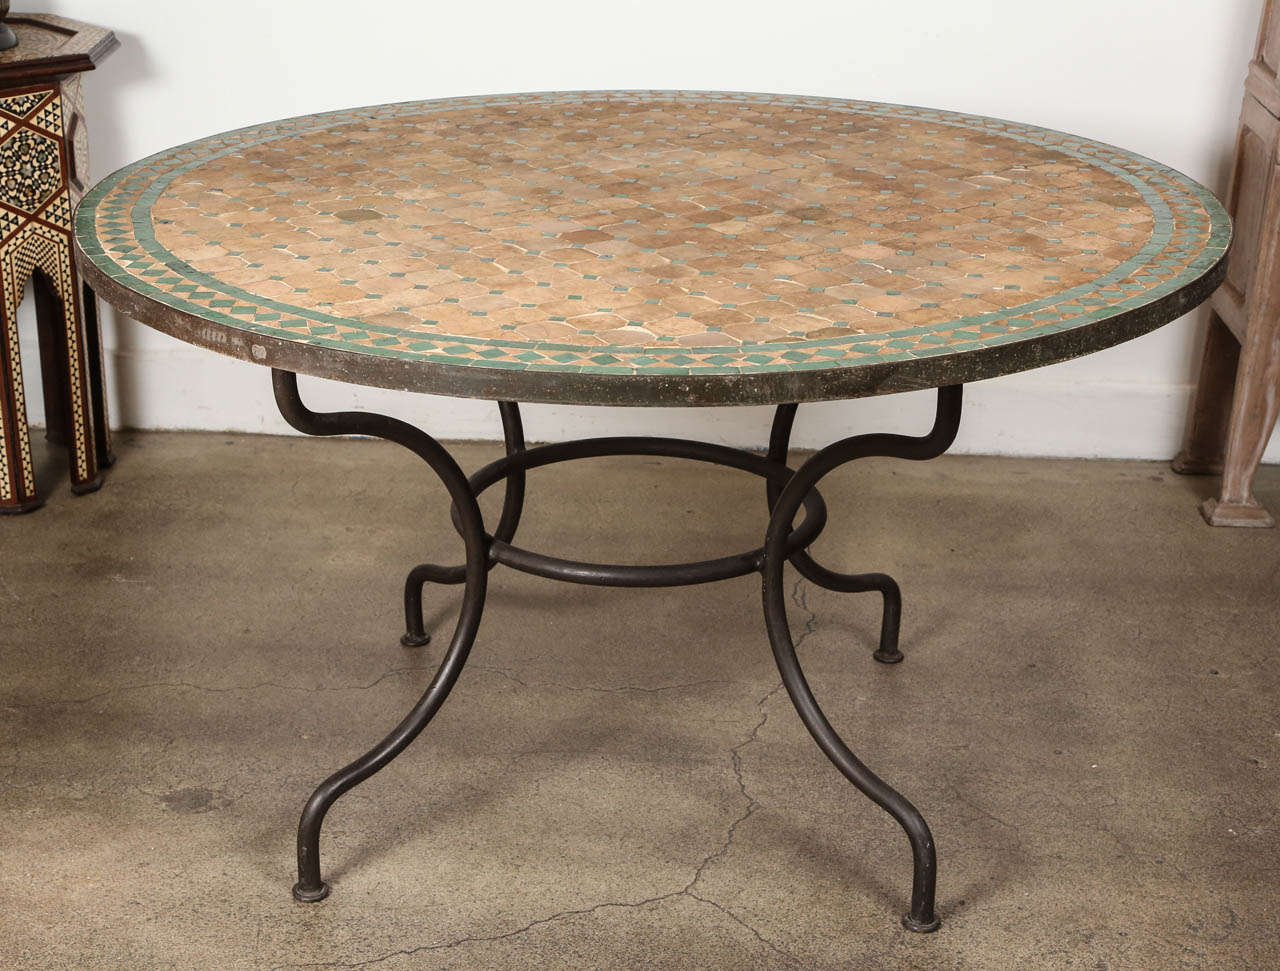 Moroccan Round Dining Mosaic Green Tile Table at 1stdibs